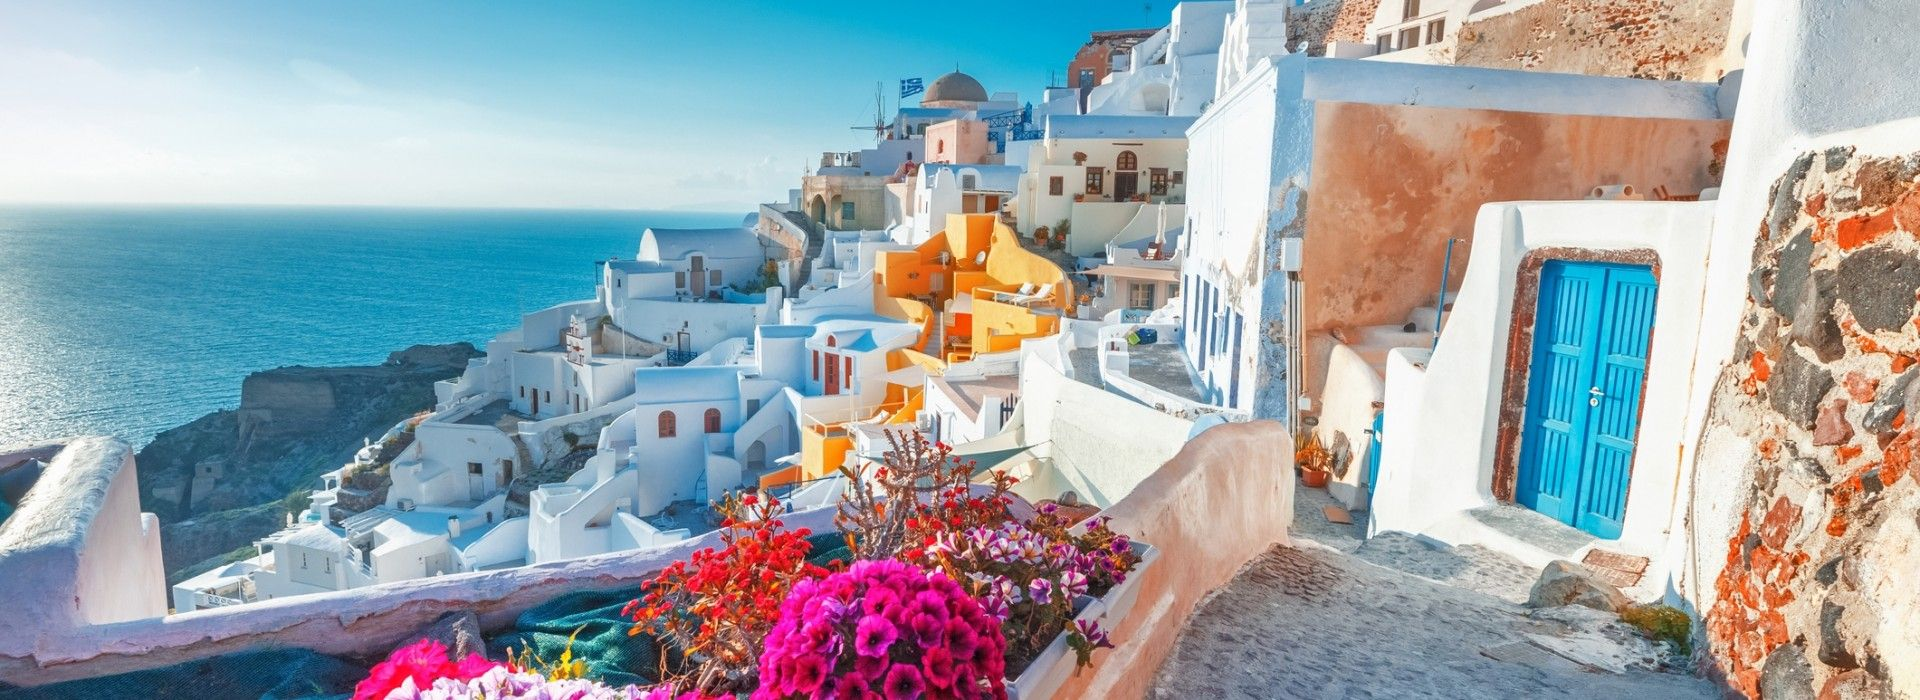 Cultural, religious and historic sites Tours in Mediterranean